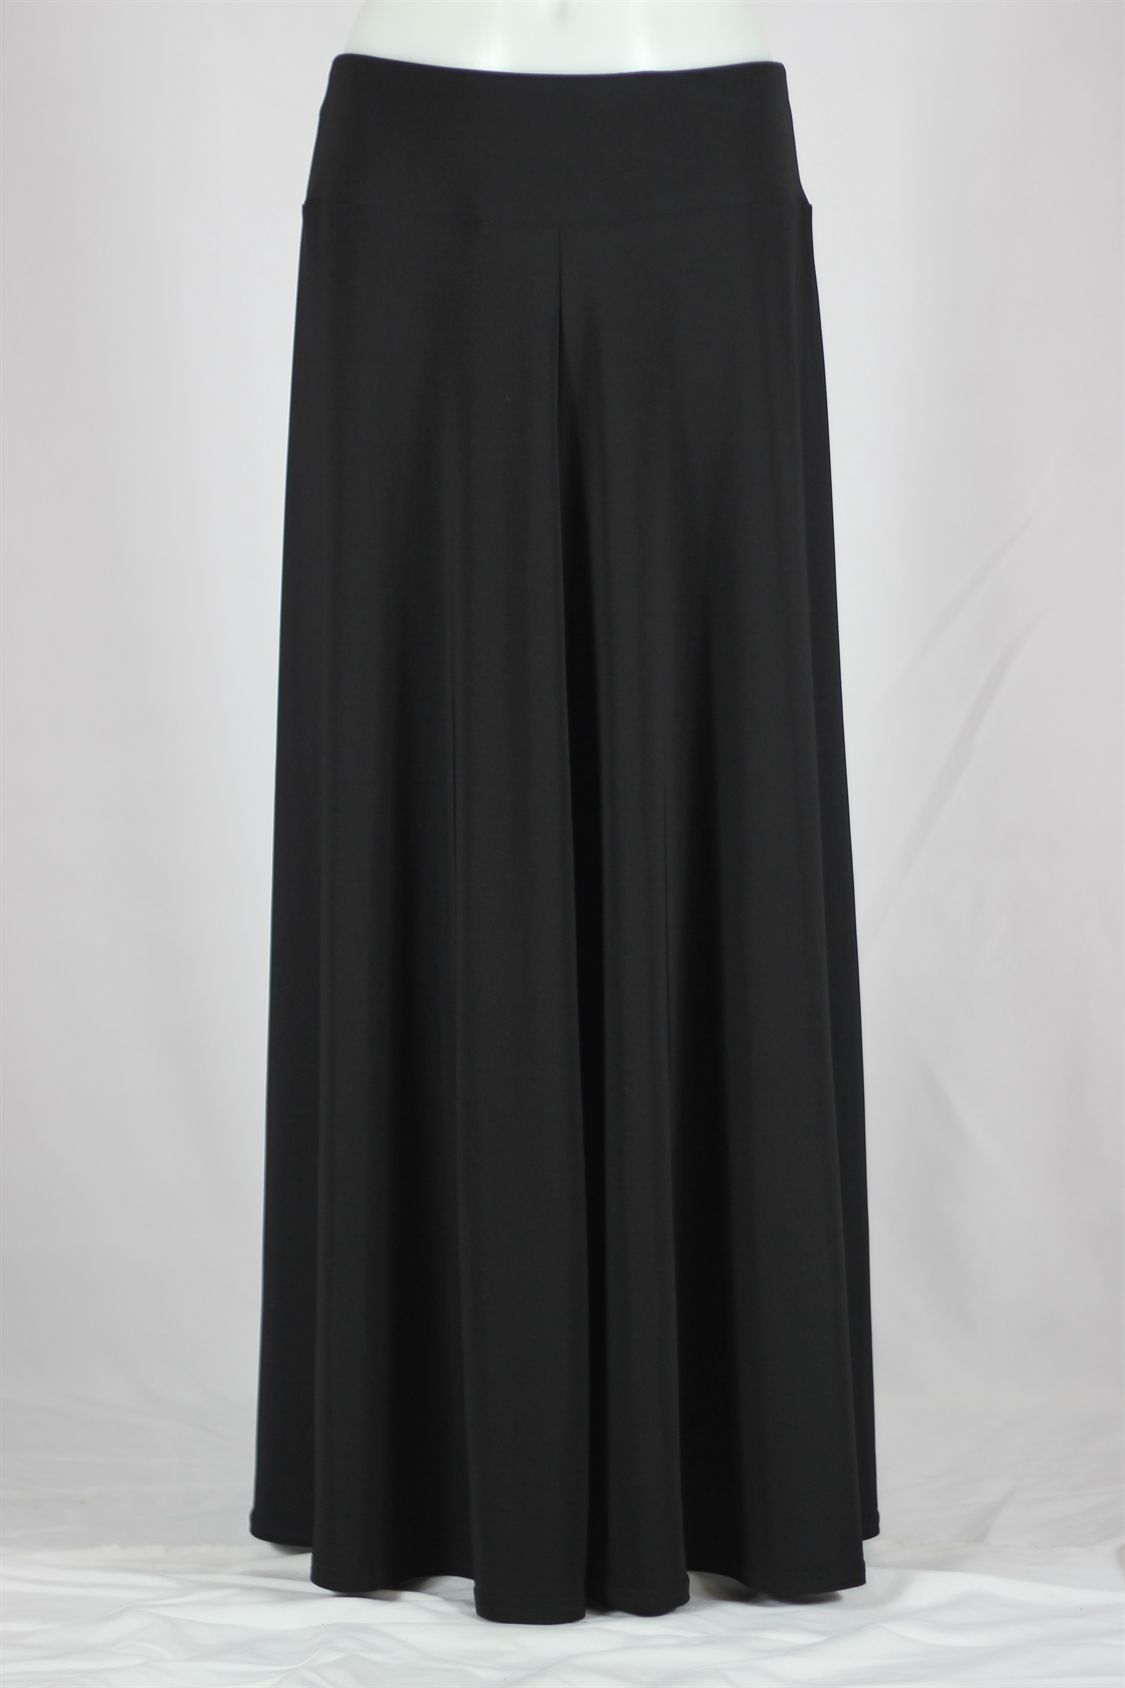 Gilat Ruffled Black Long Skirt, Sizes 6-16: theskirtoutlet.com ...